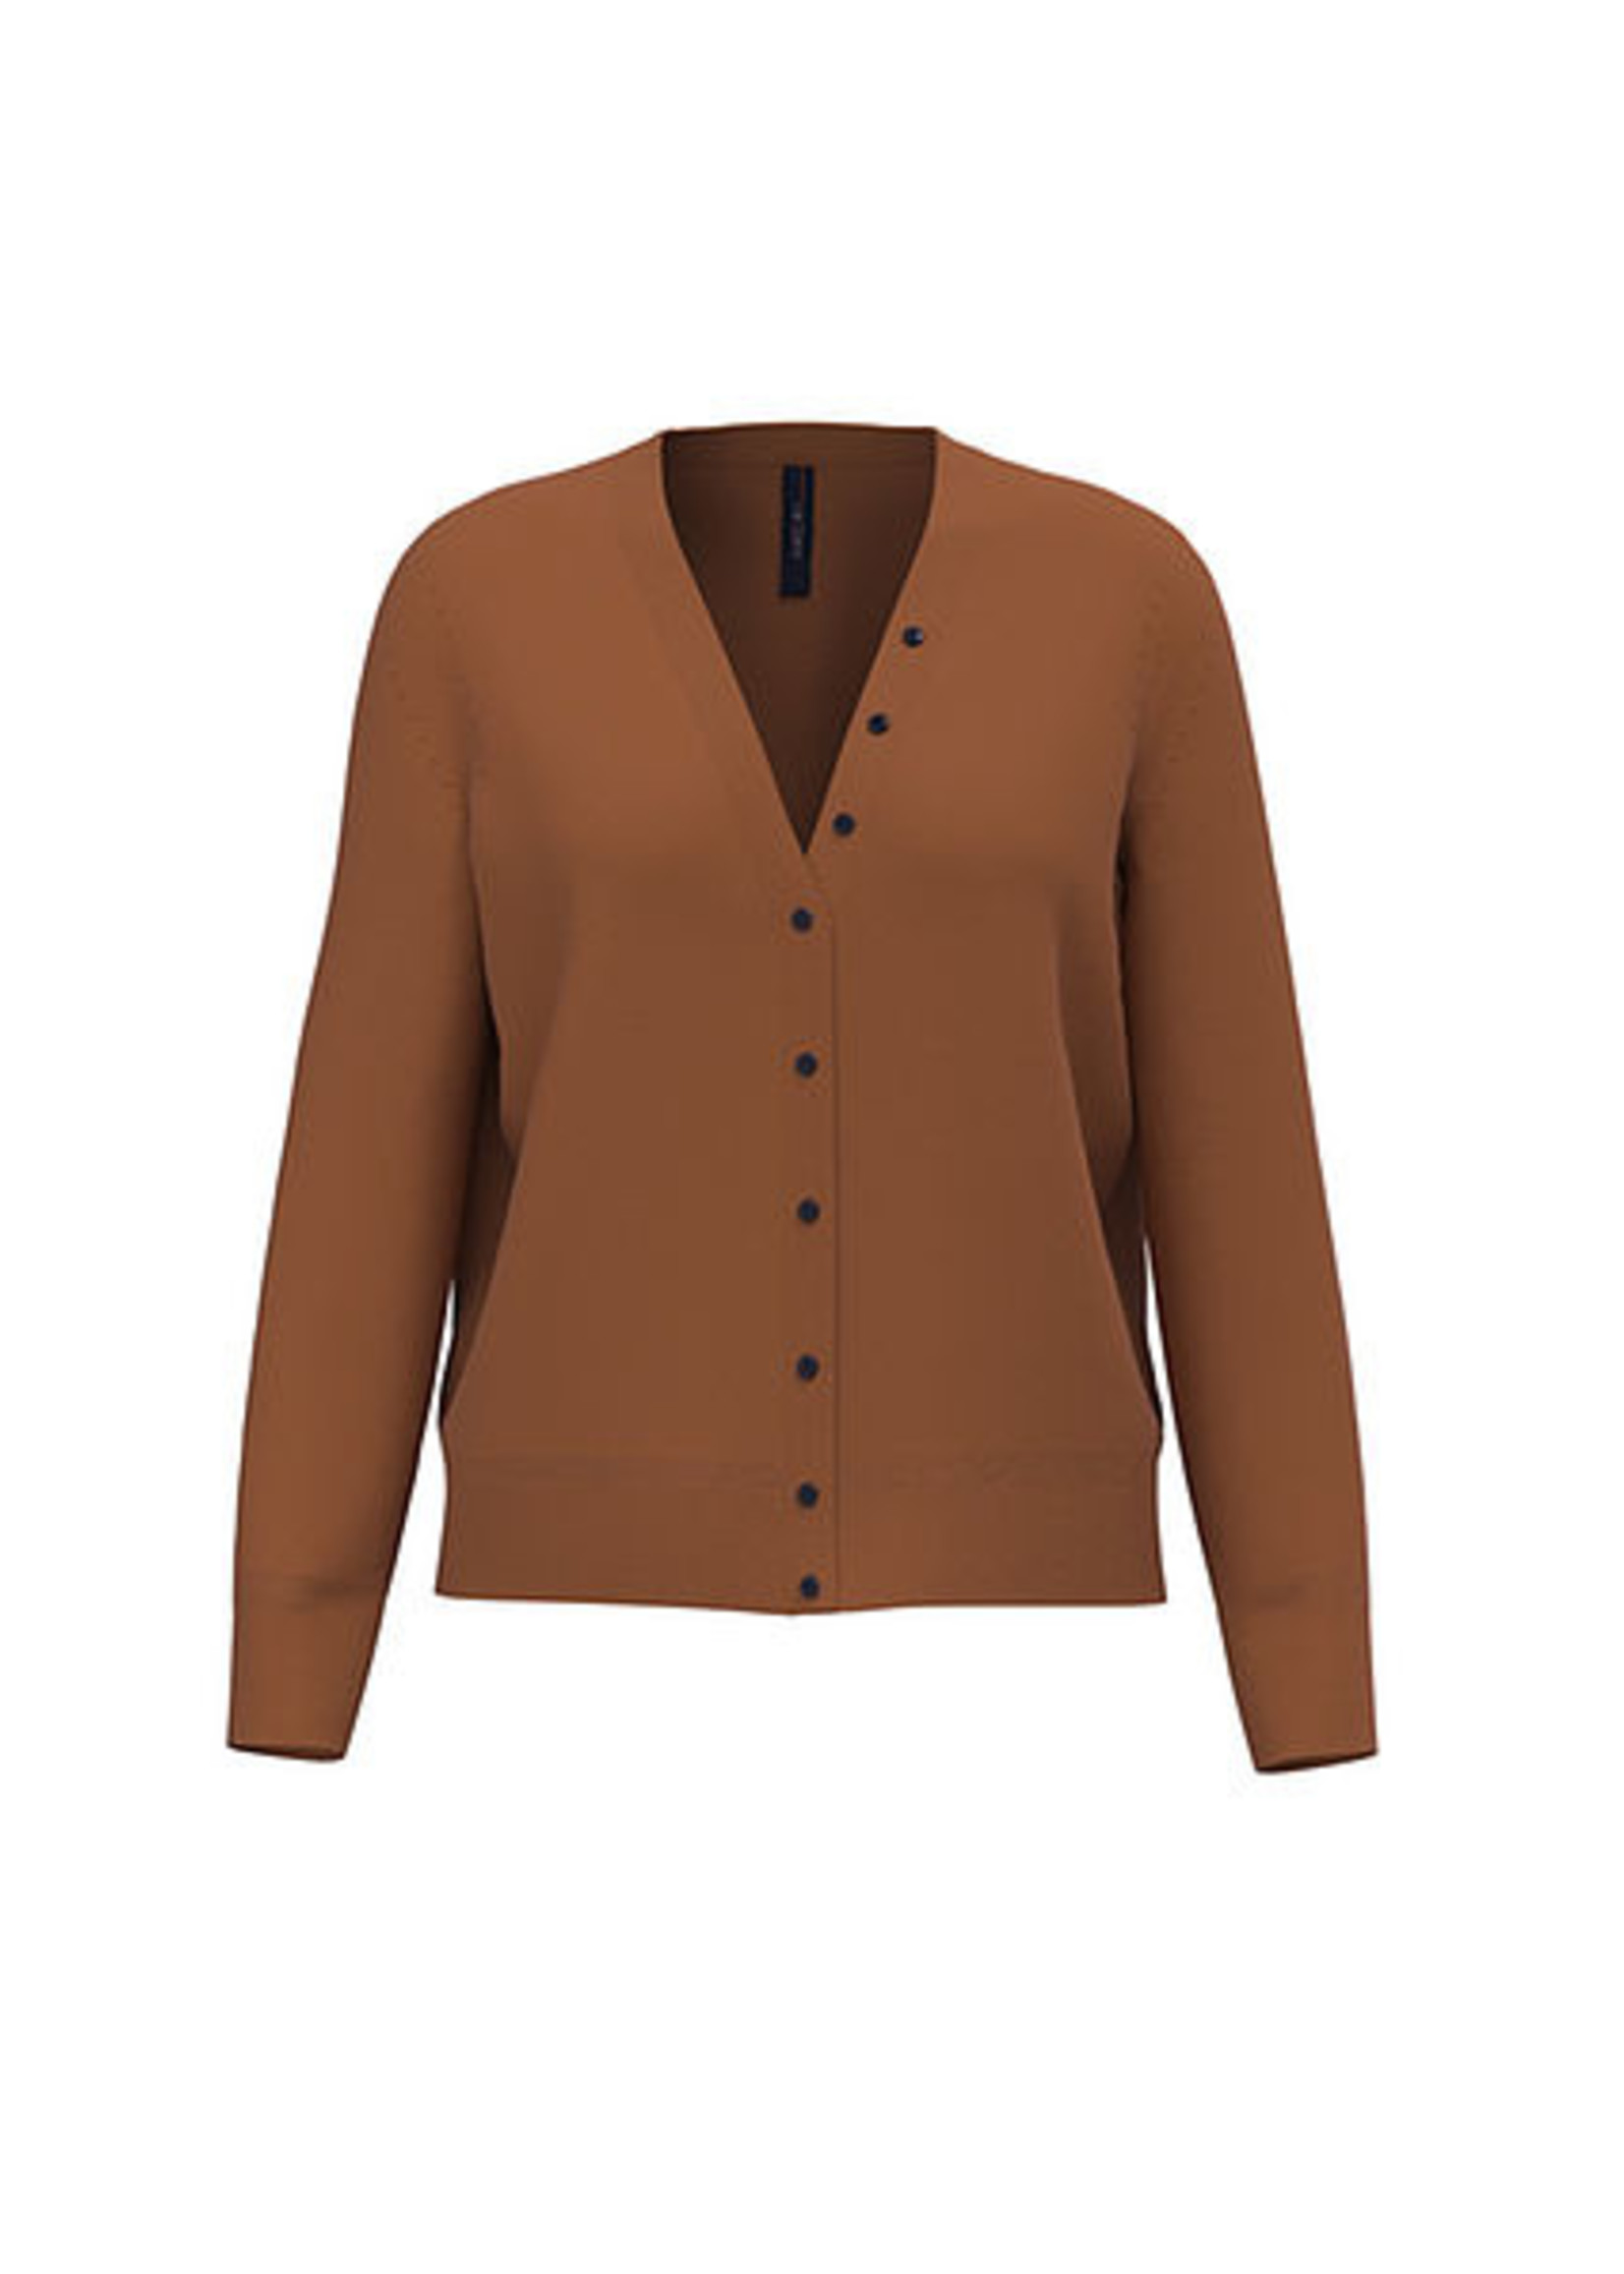 Marccain Sports Jack RS 31.40 M80 sienna